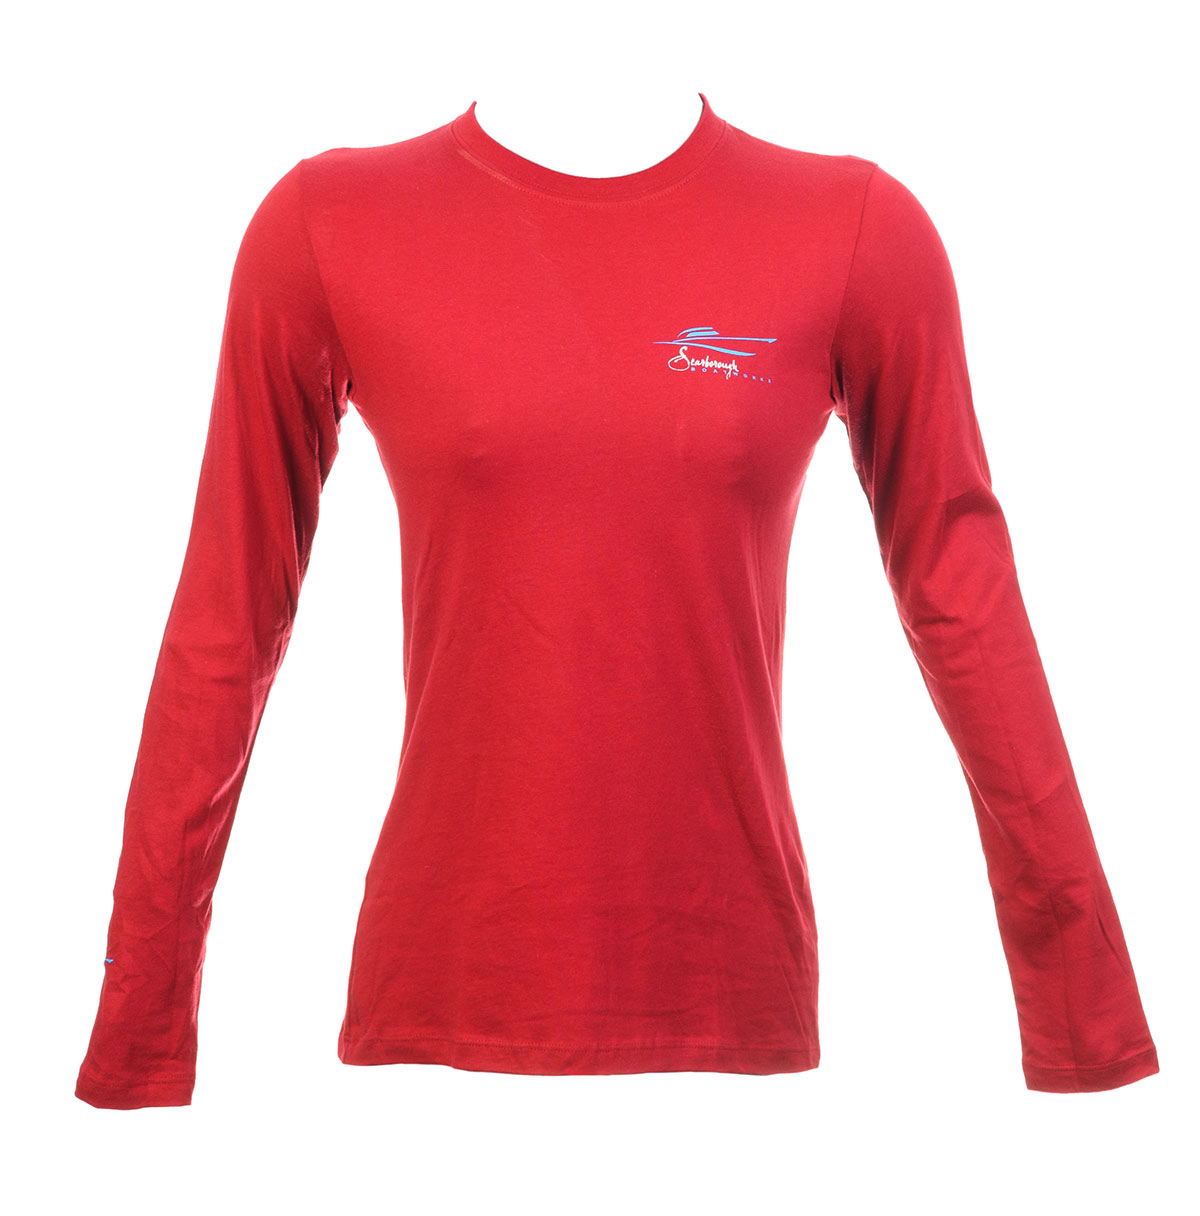 Scarborough-Boatworks-Womens-Clothing-Long-Sleeve-T-Shirt-red-106